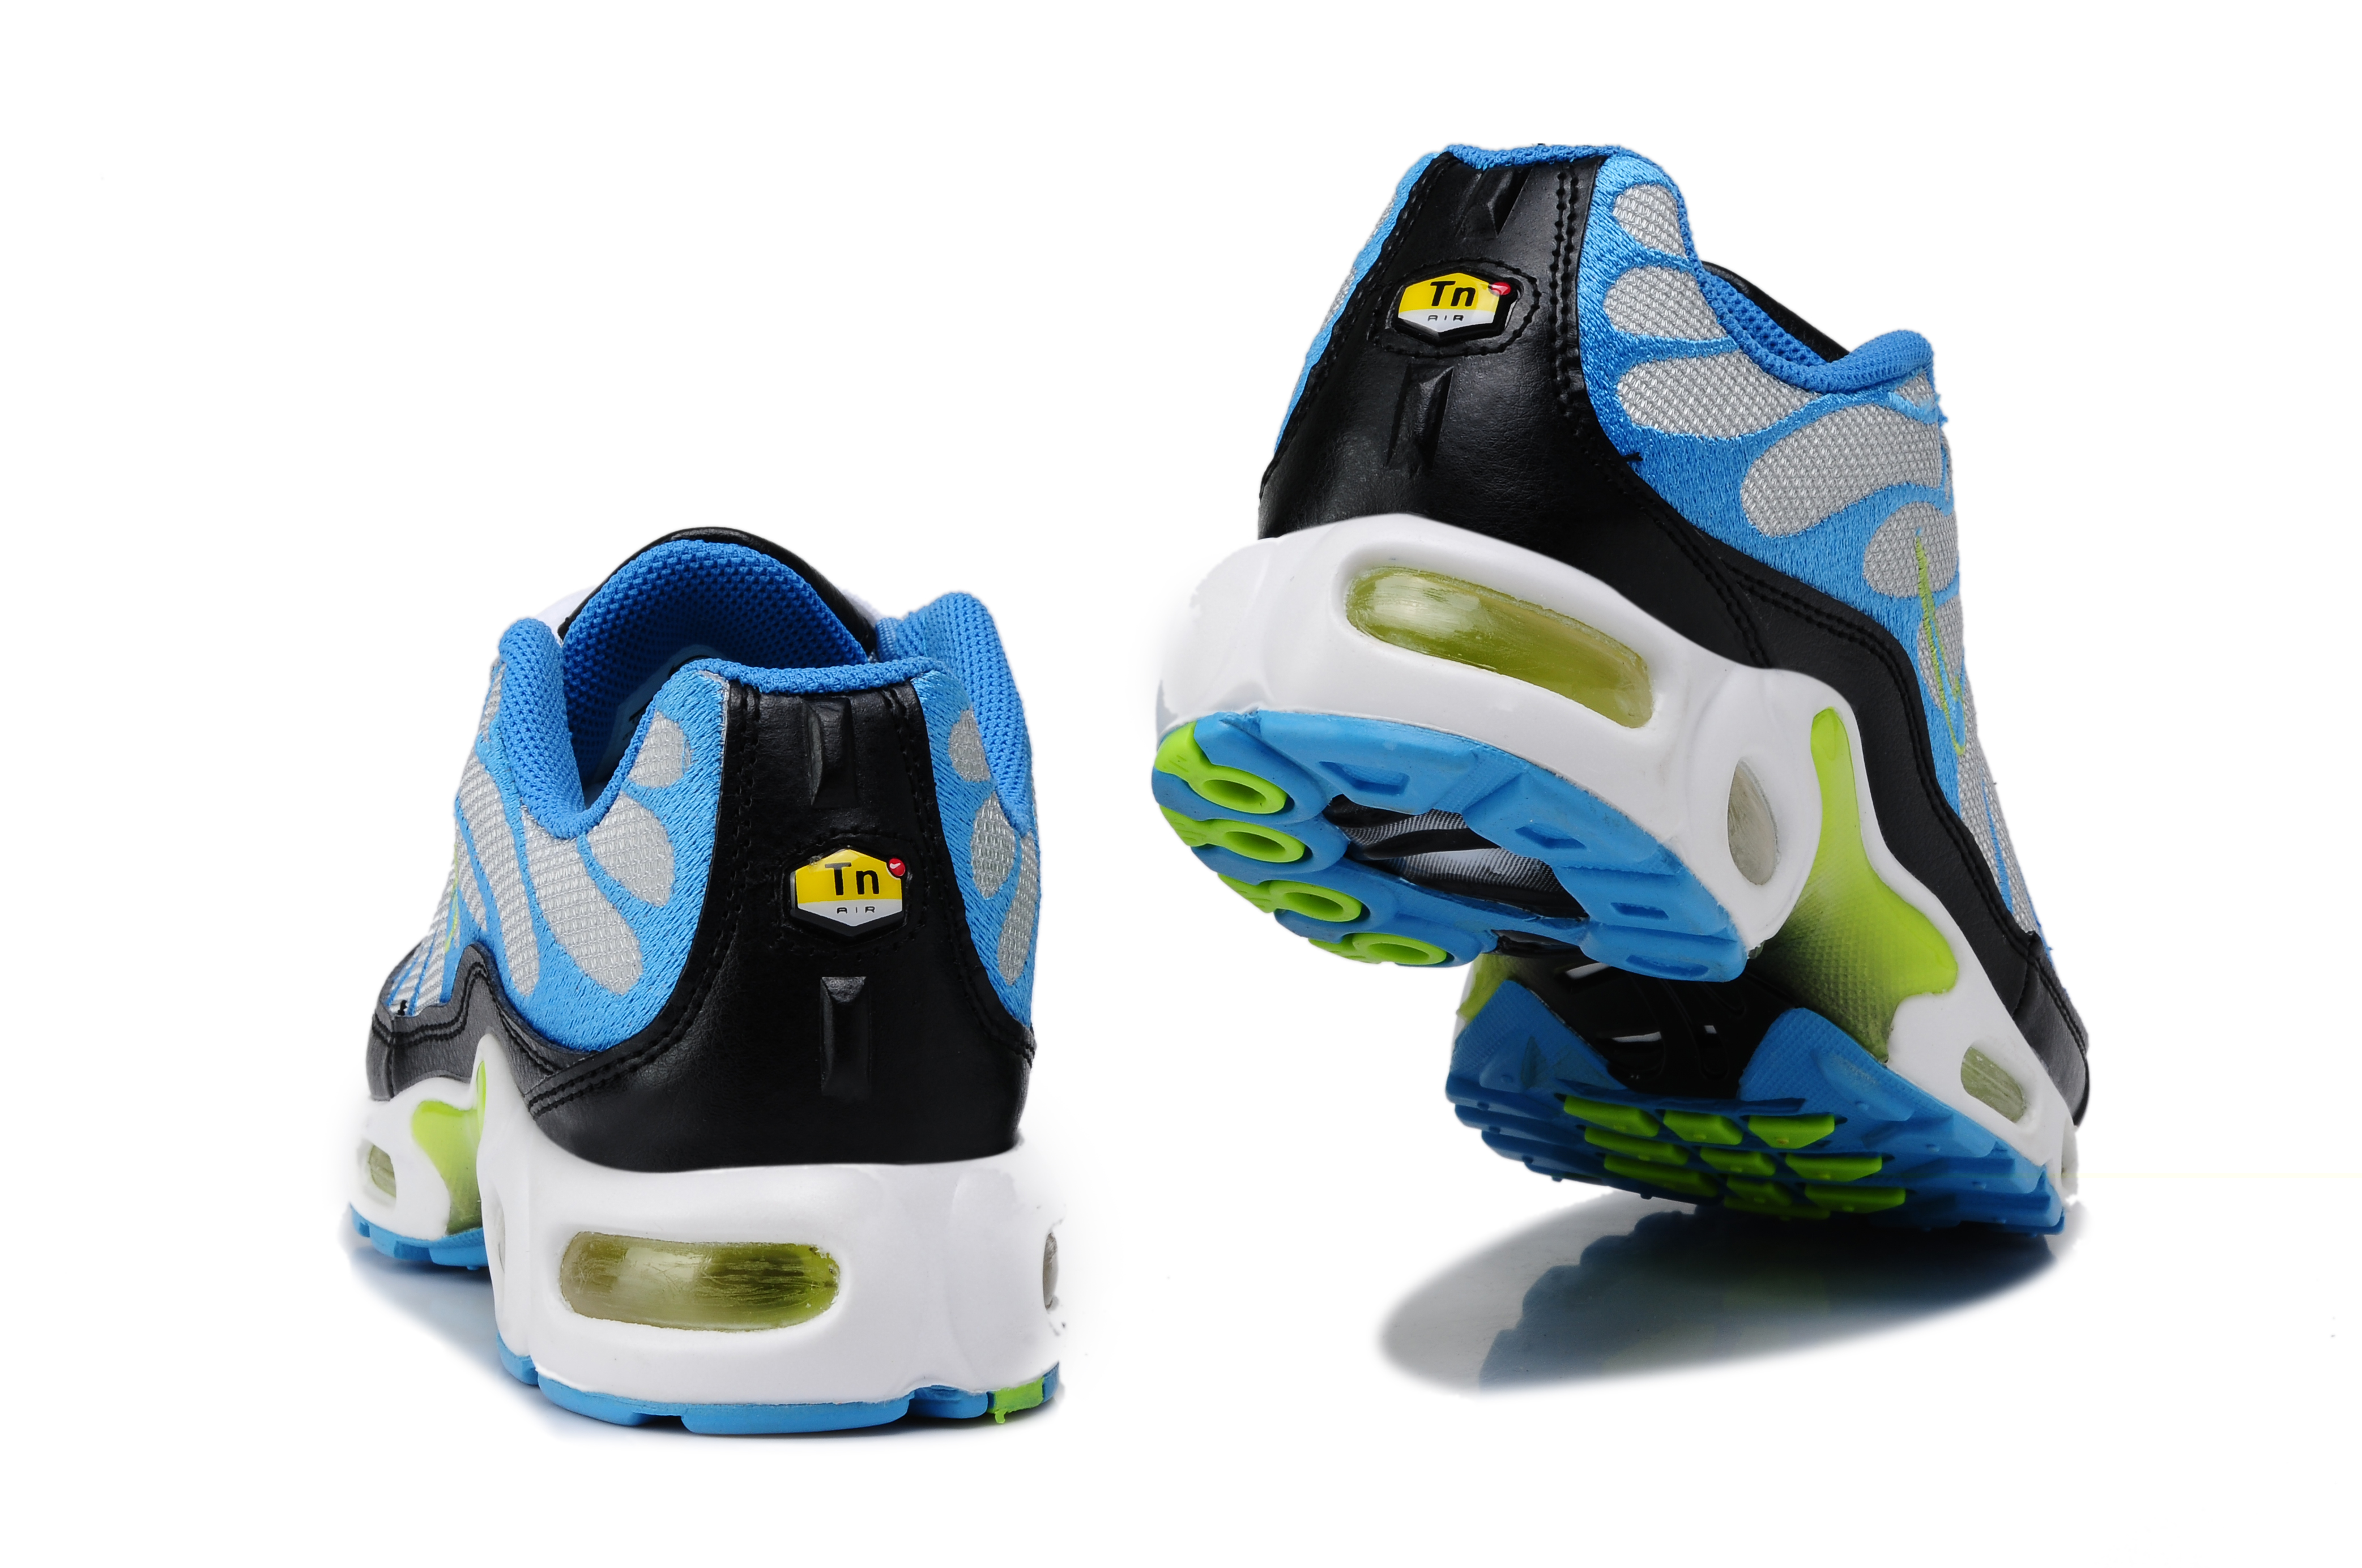 the best attitude d34bf 5854f Nike TN 2016 Femme Homme tn Requin Nouveaux Femme chaussures nike air max  2011 nike tn classic